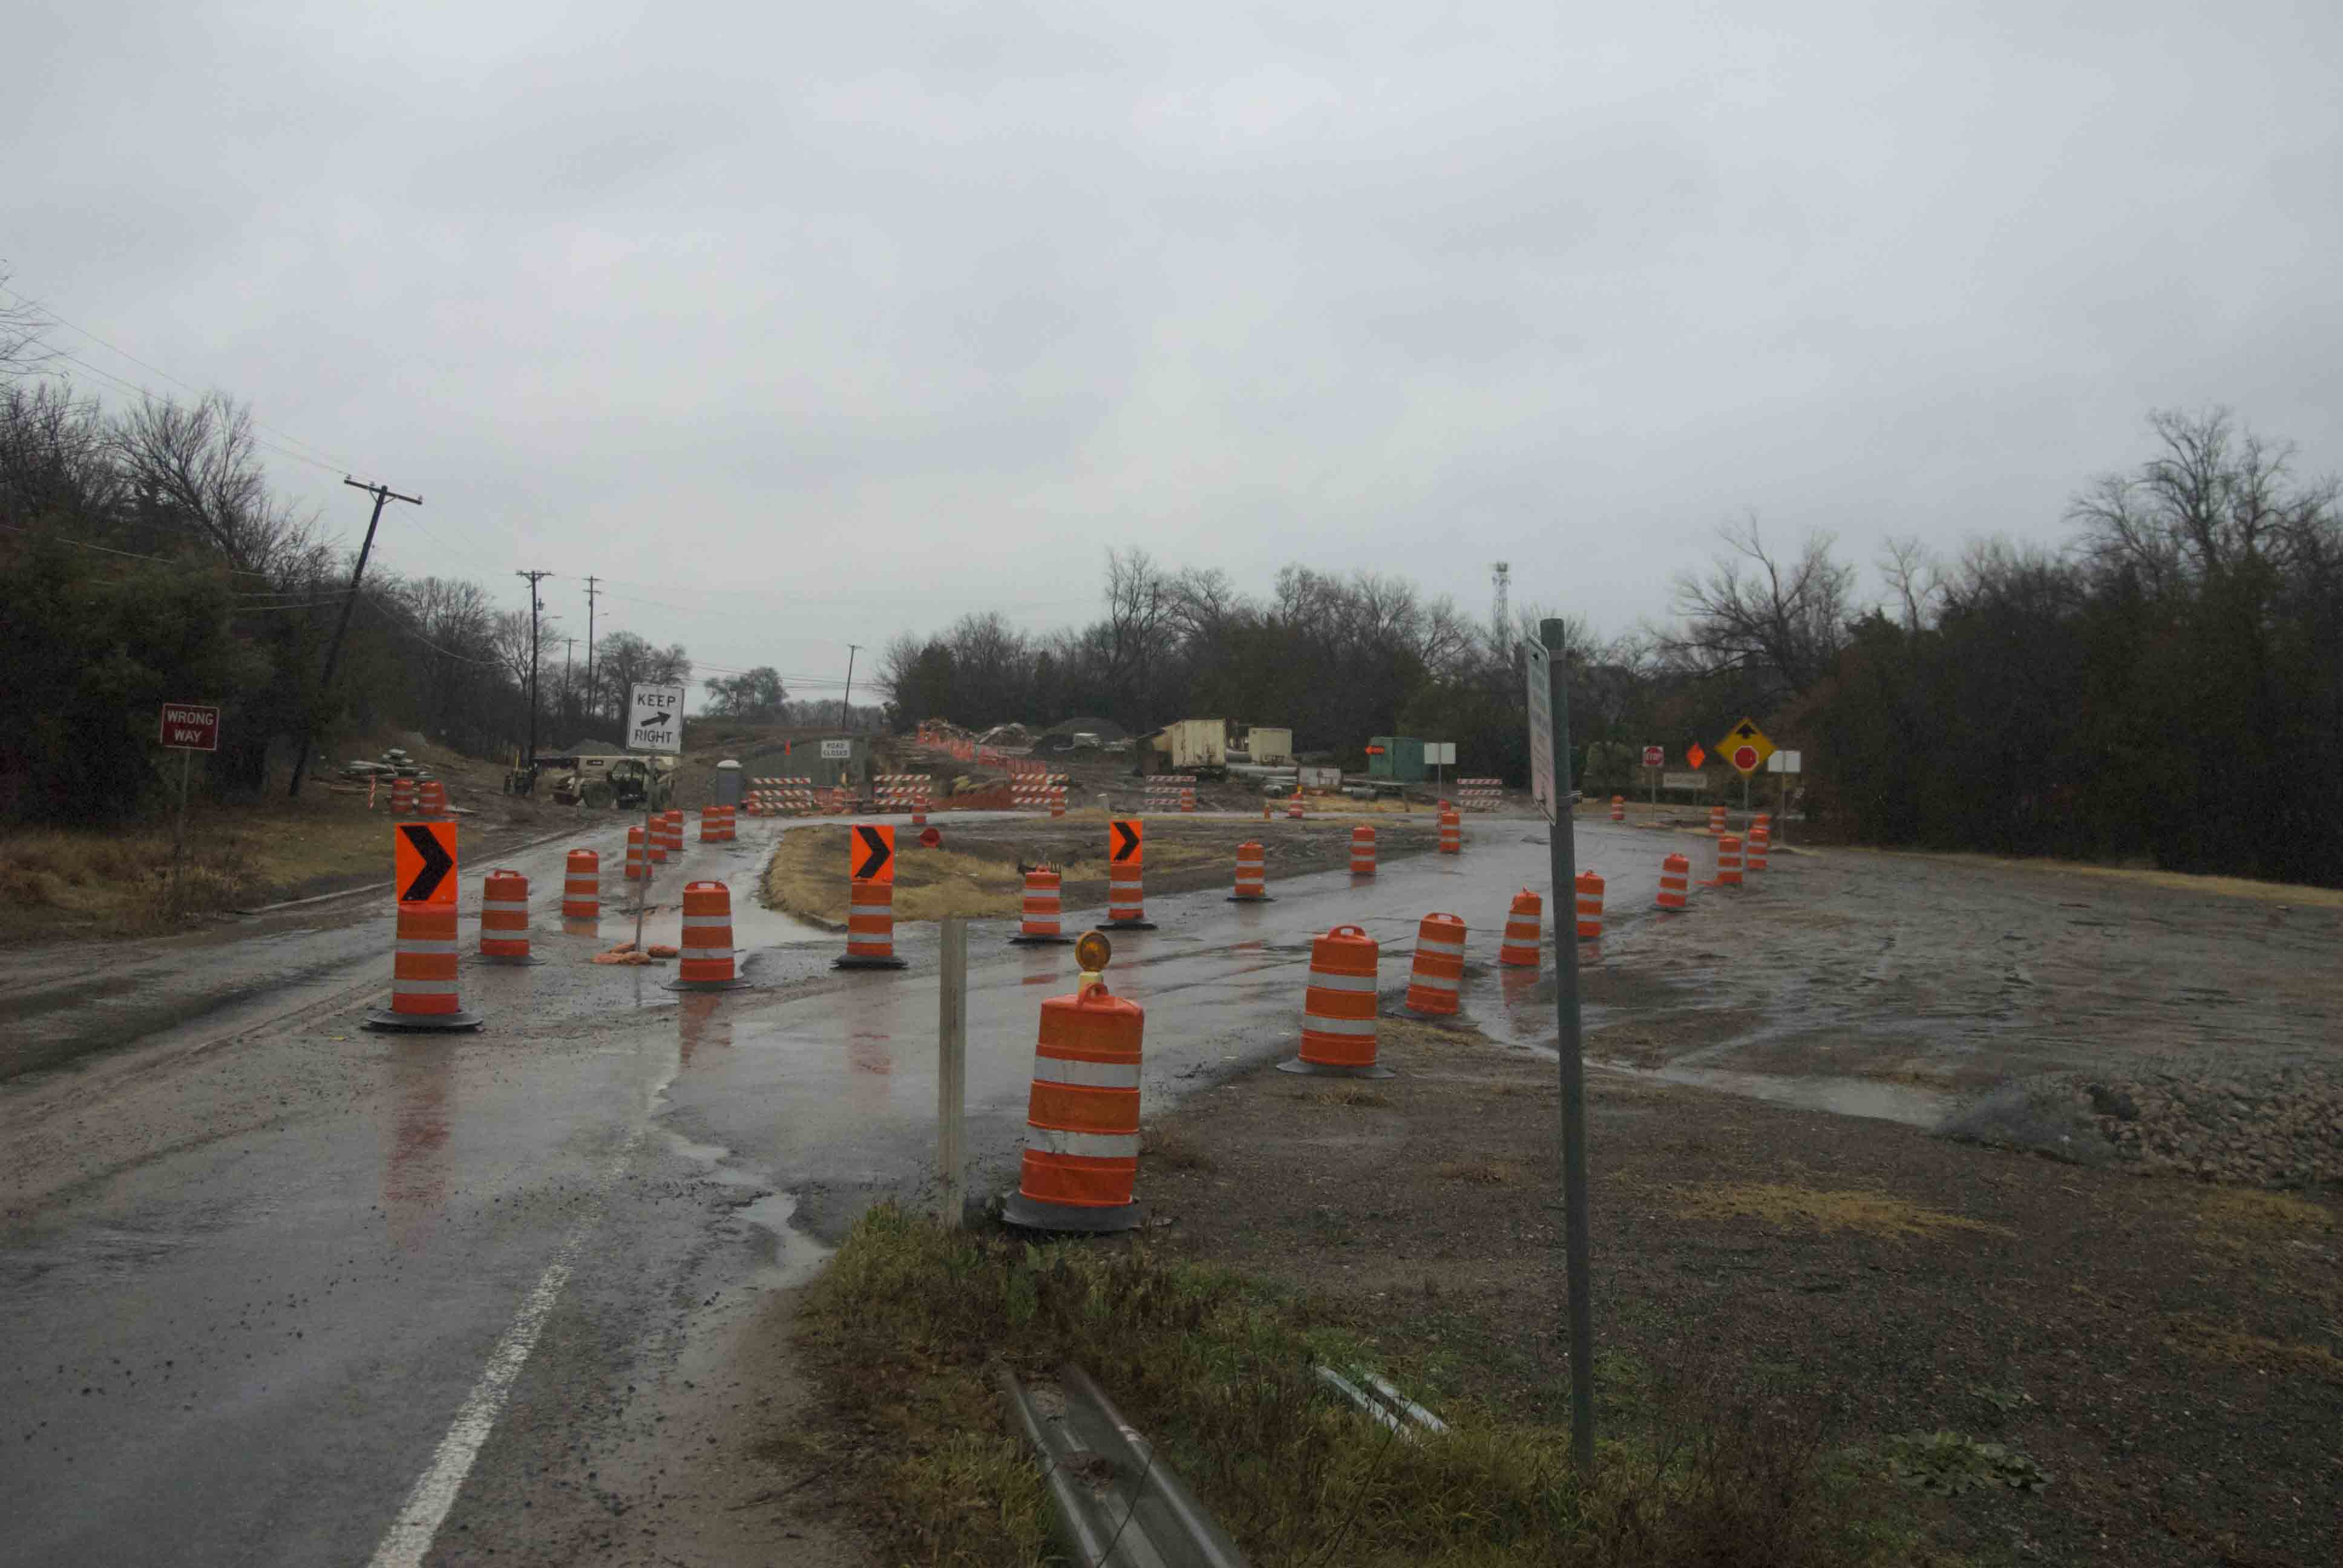 Construction on Greenville has made it much more difficult for many living in the community.